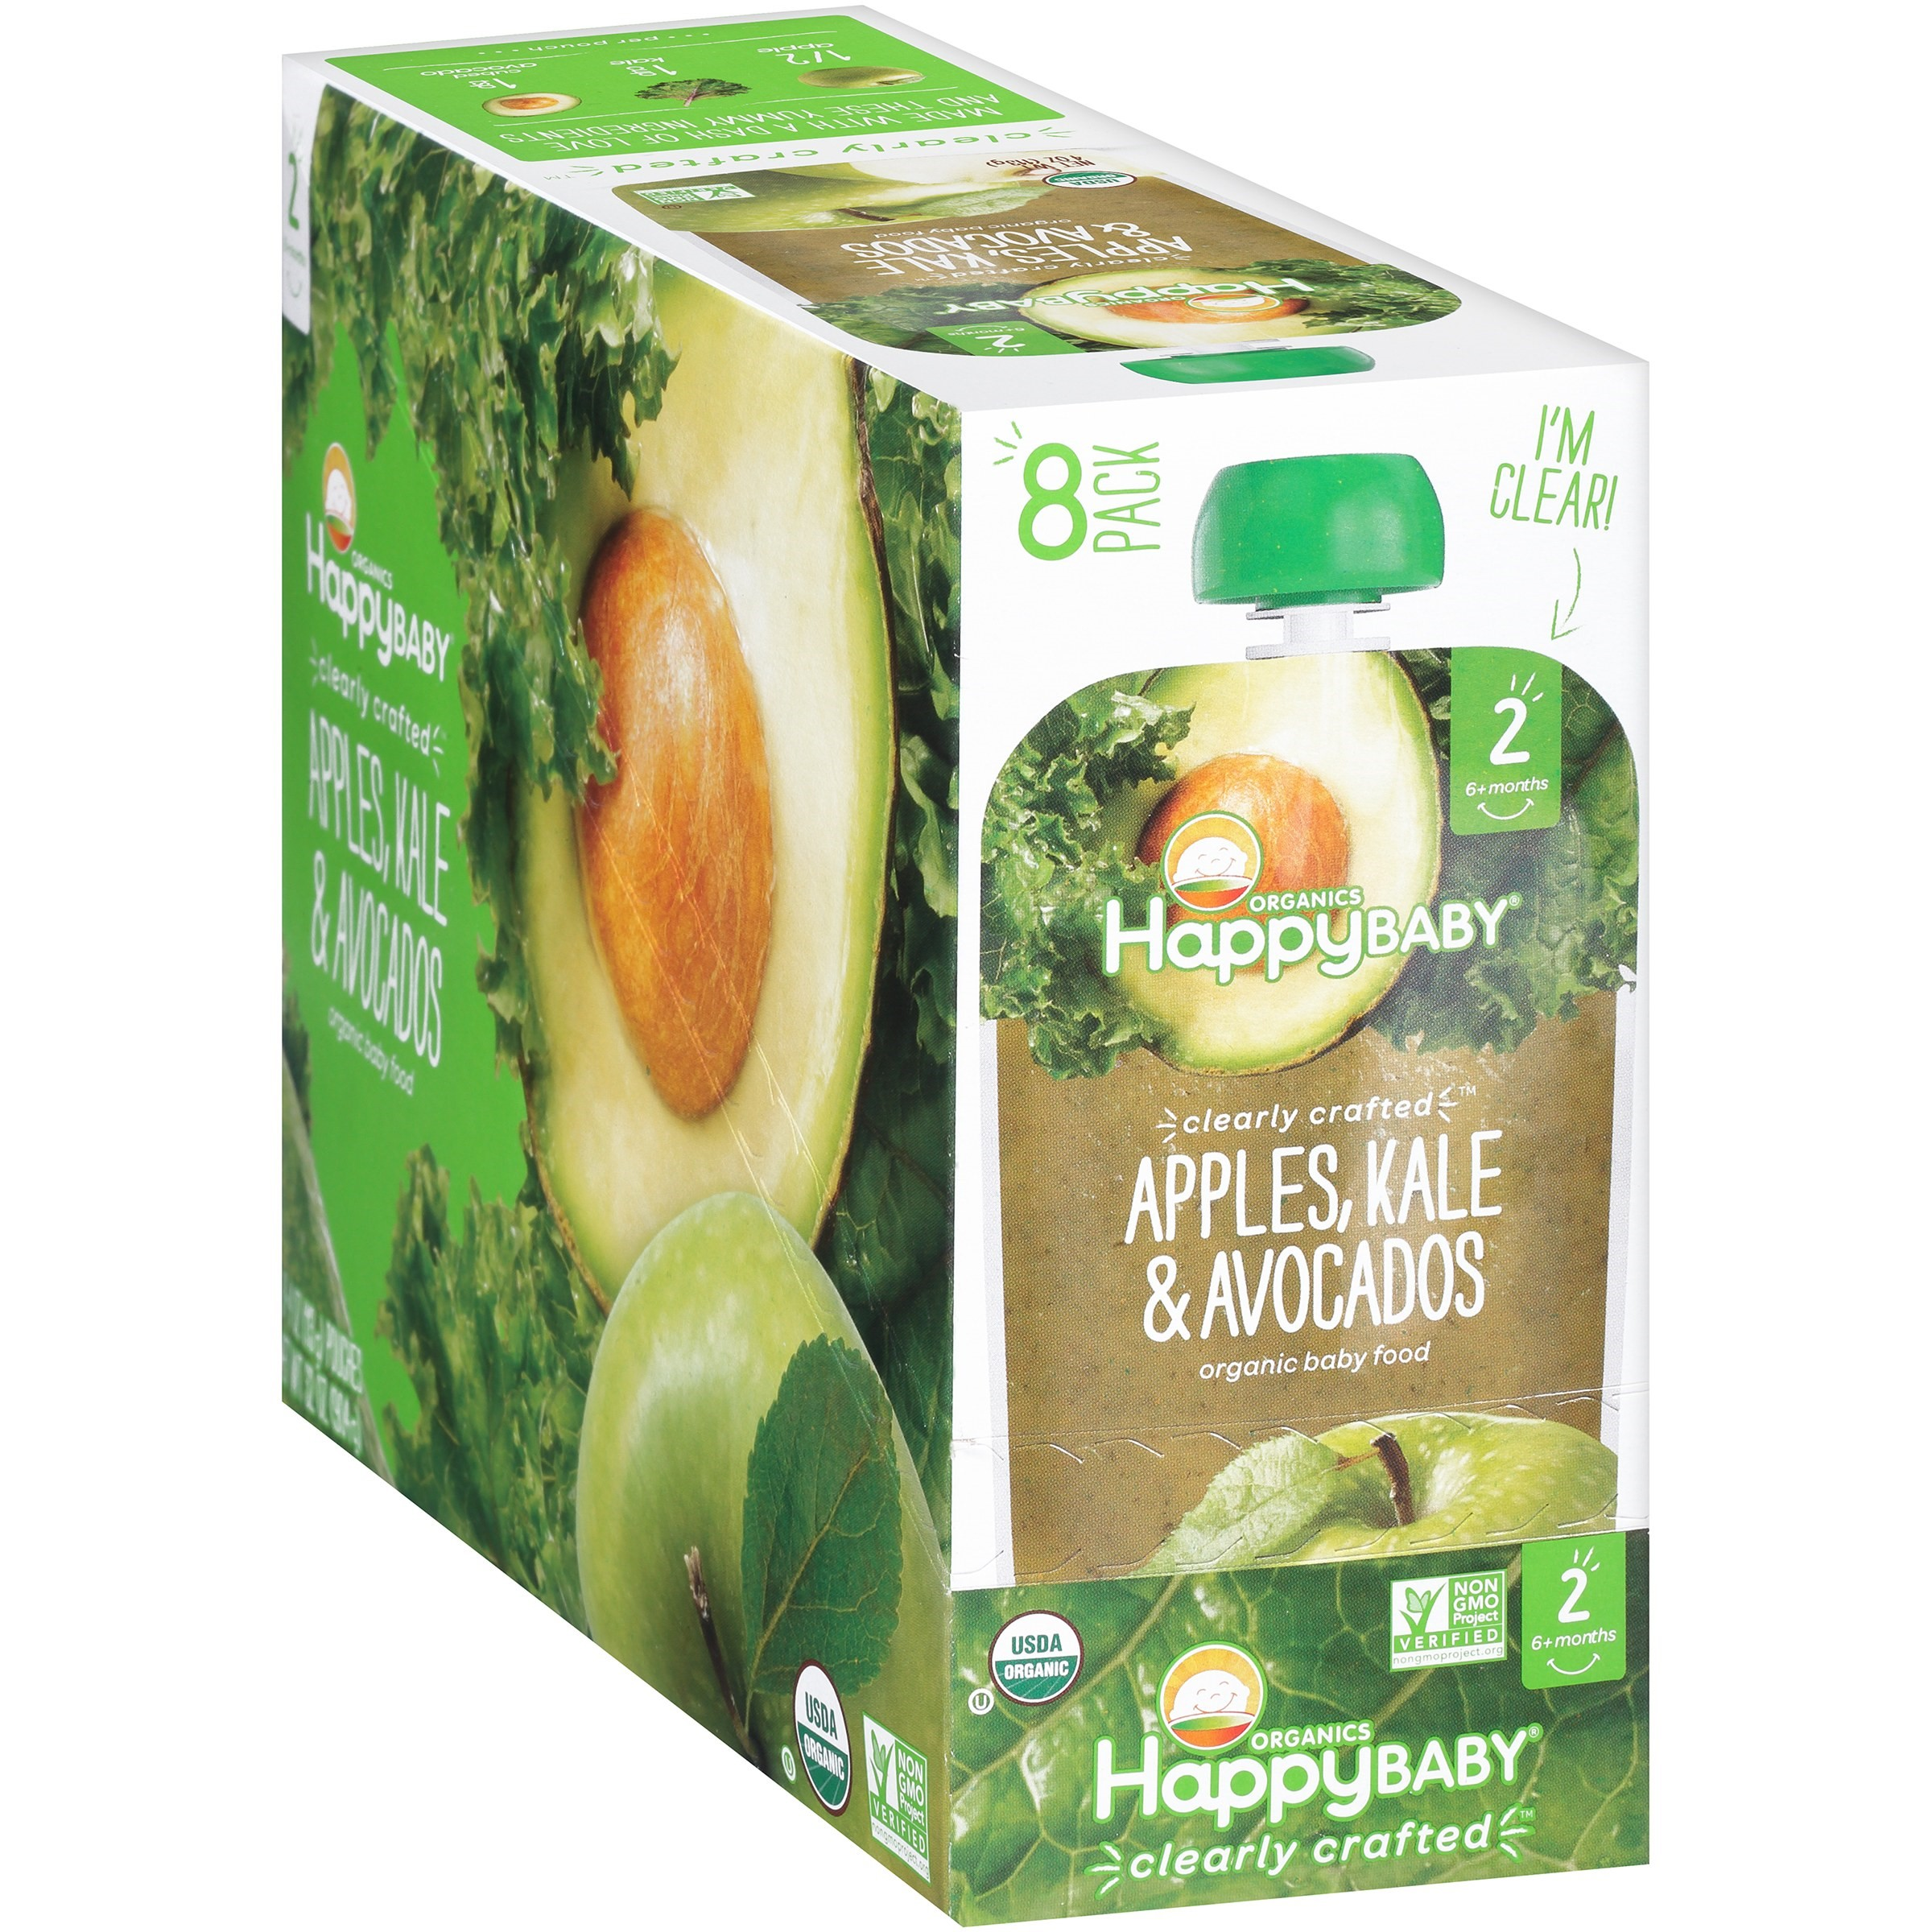 Happy Baby Organics Baby Food, Apples, Kale & Avocados, 4 Oz x 8